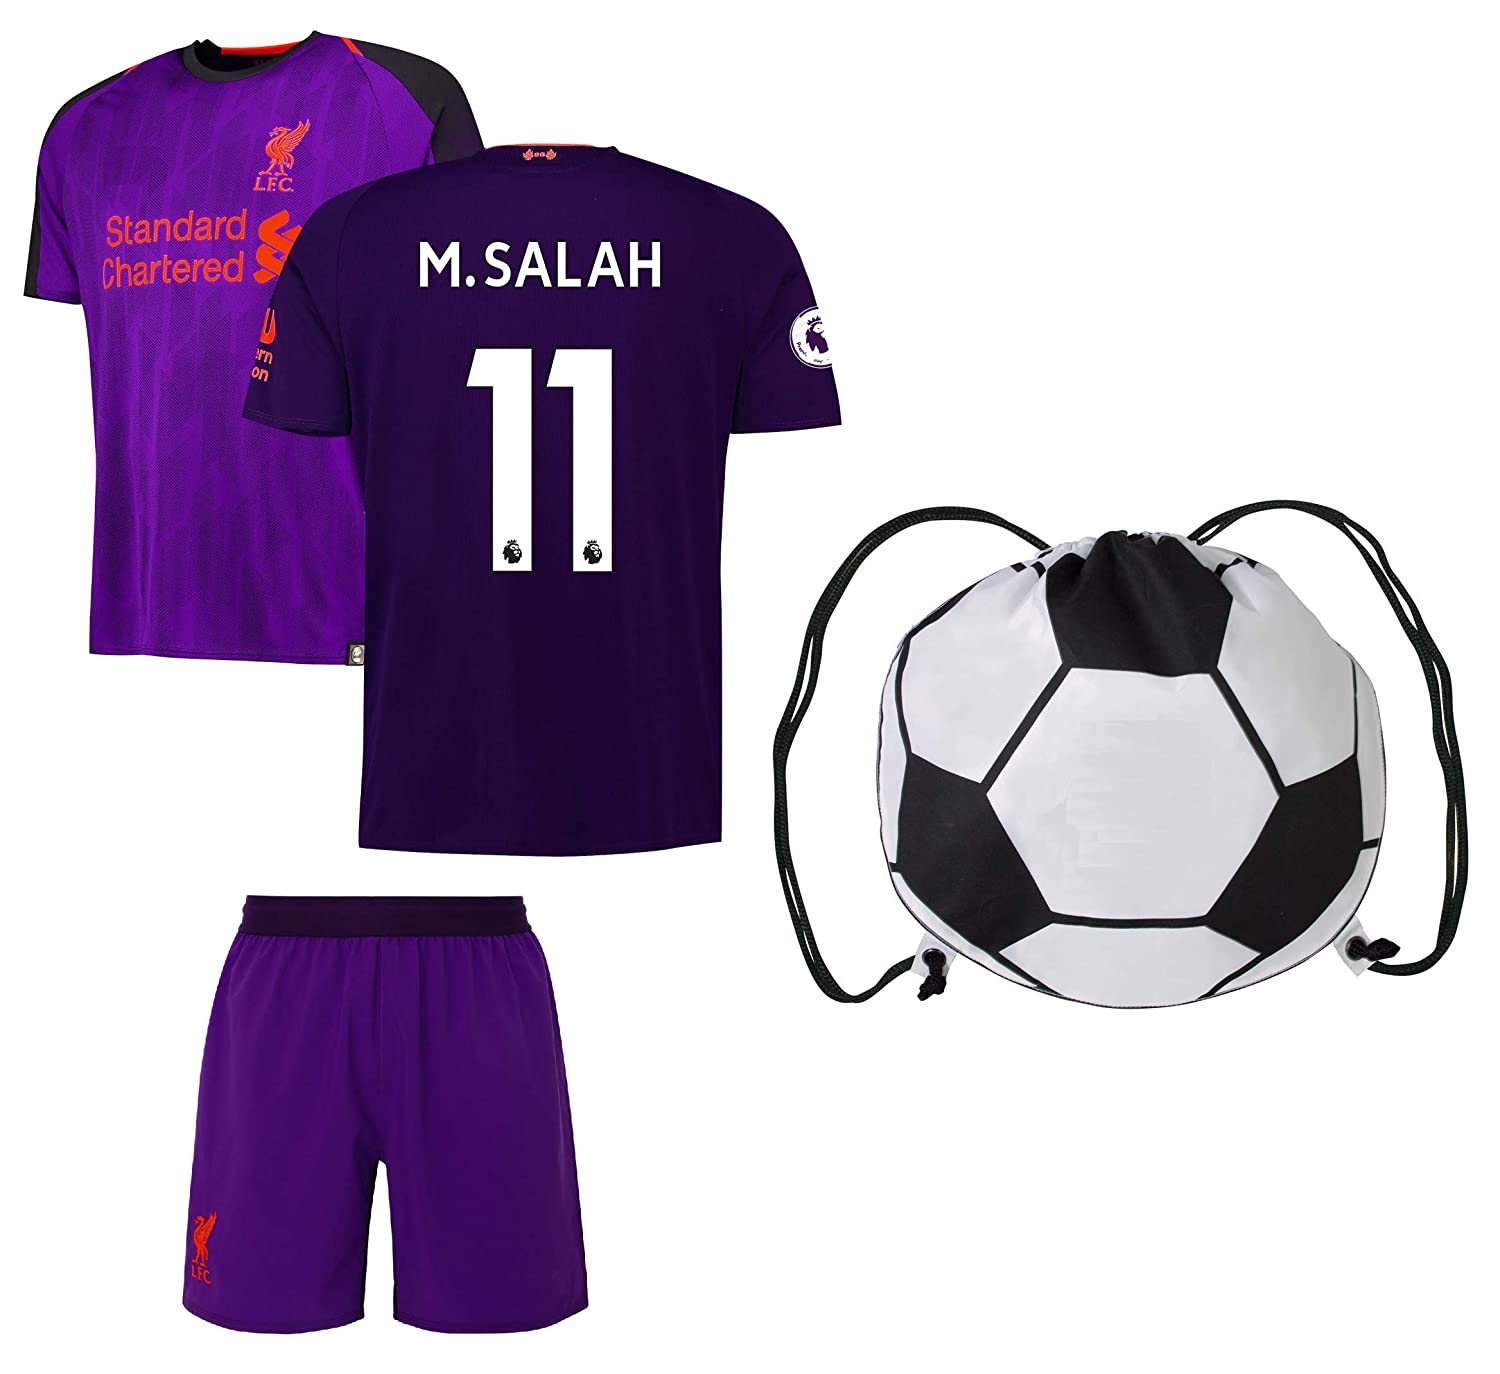 lowest price a2409 f43dc Rhinox Liverpool Salah #11 Youth Soccer Jersey Home/Away Short Sleeve Kit  Shorts Kids Gift Set